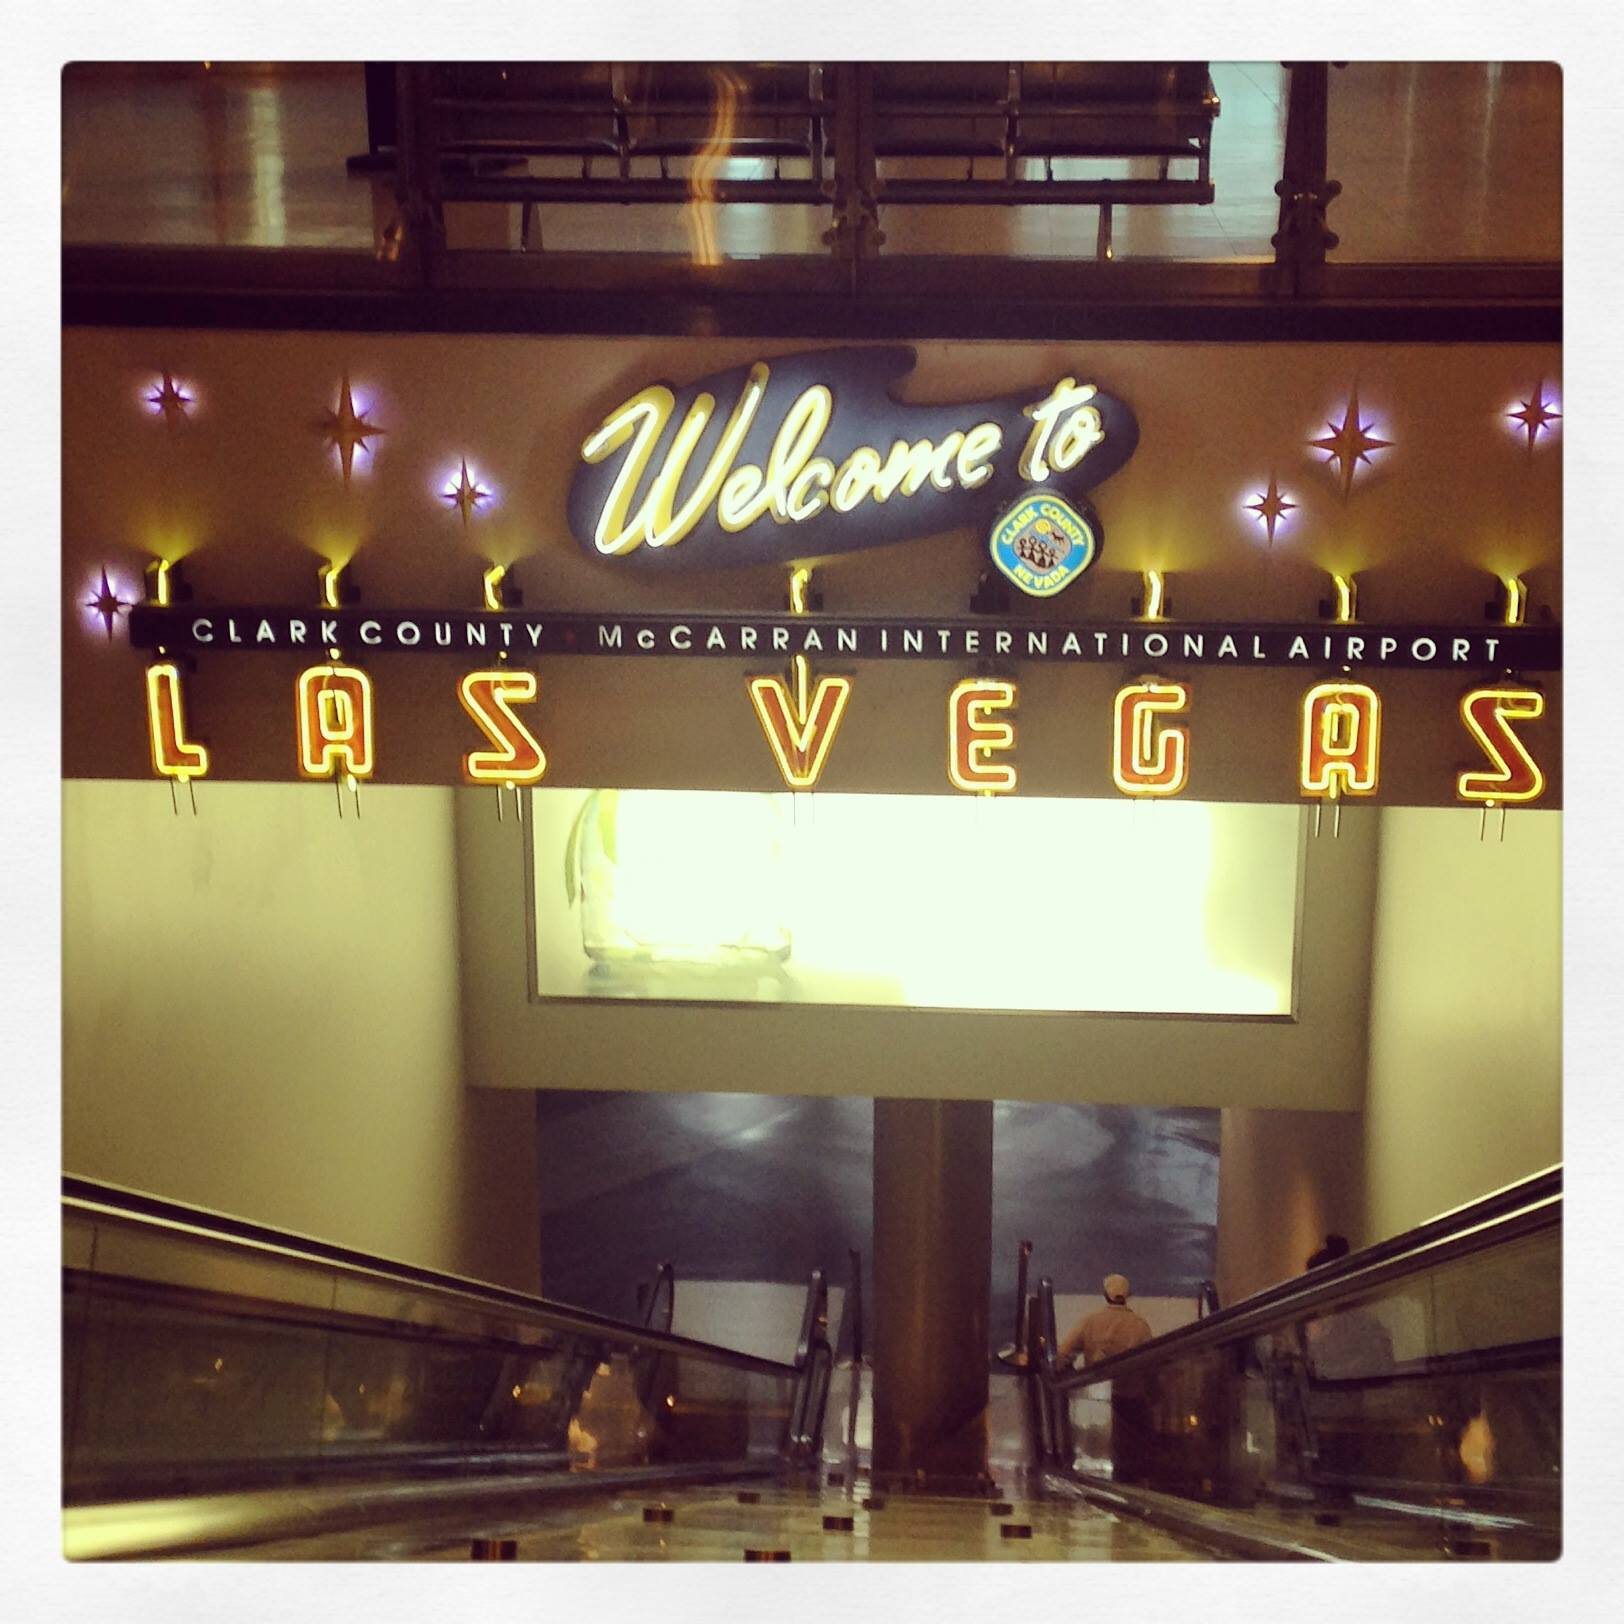 Welcome to Vegas! Sign at the airport.